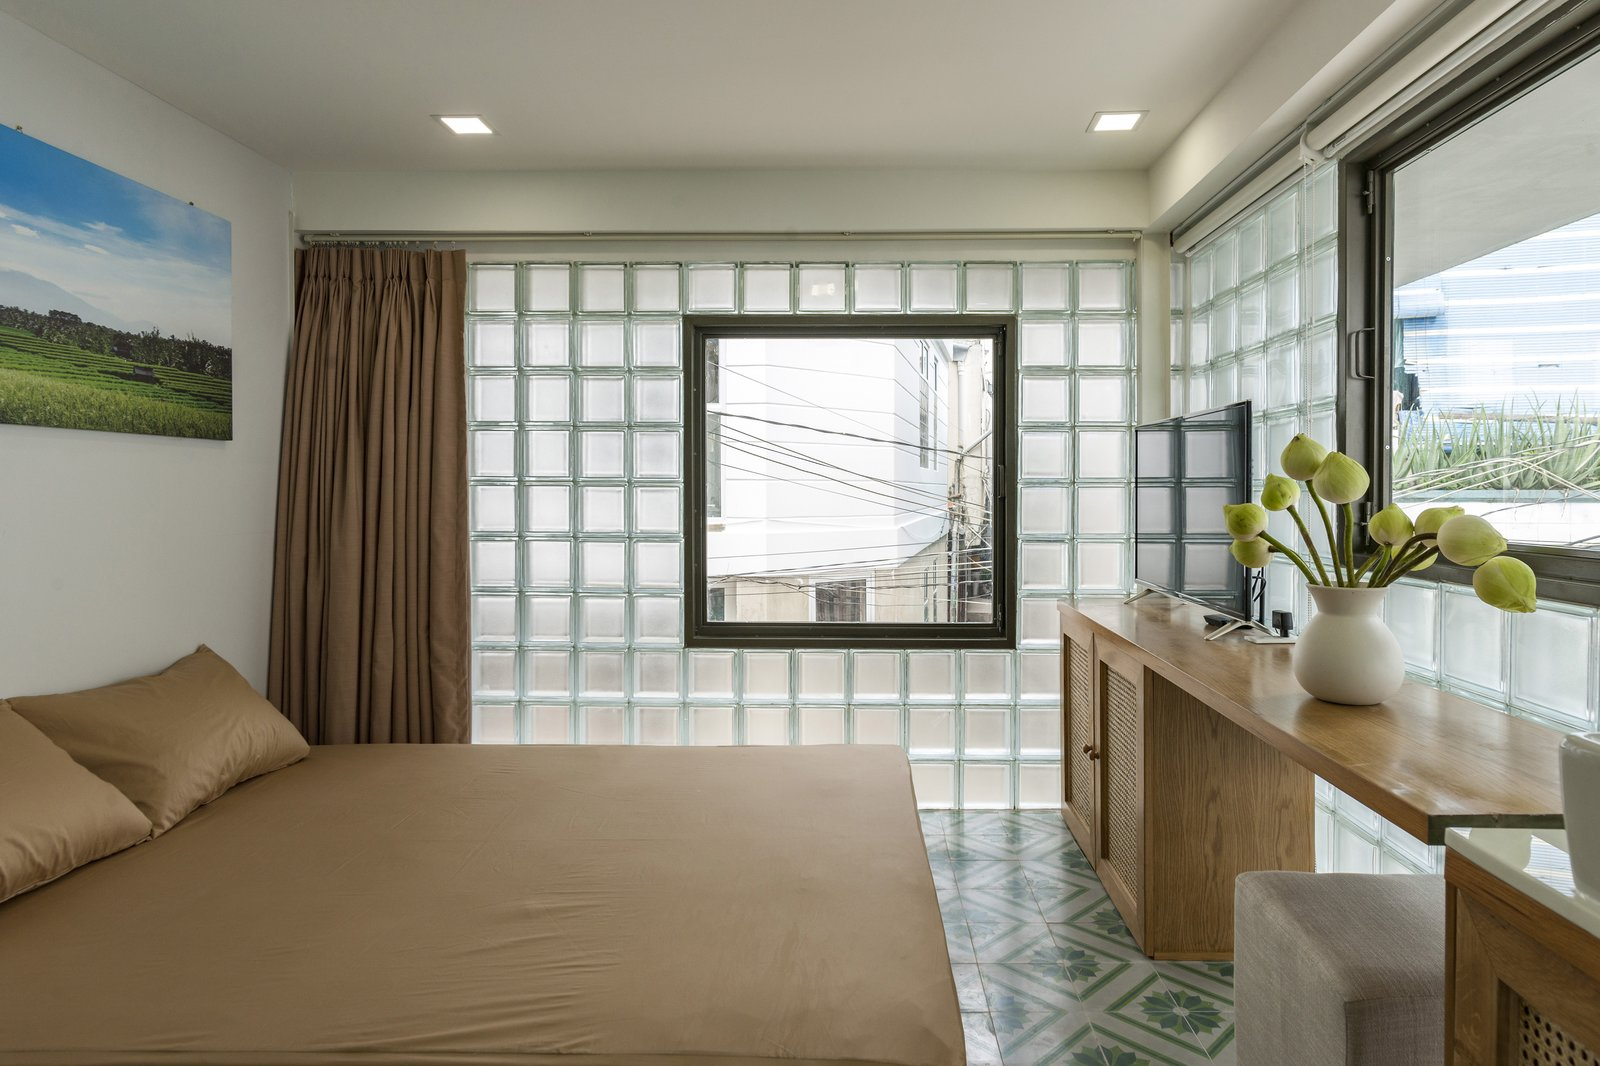 Bedroom, Bed, Recessed Lighting, Ceramic Tile Floor, and Porcelain Tile Floor The guest bedroom and bath are located on the second level of the home.  Photo 6 of 12 in This Vietnamese Micro Home Is as Practical as It Is Radiant